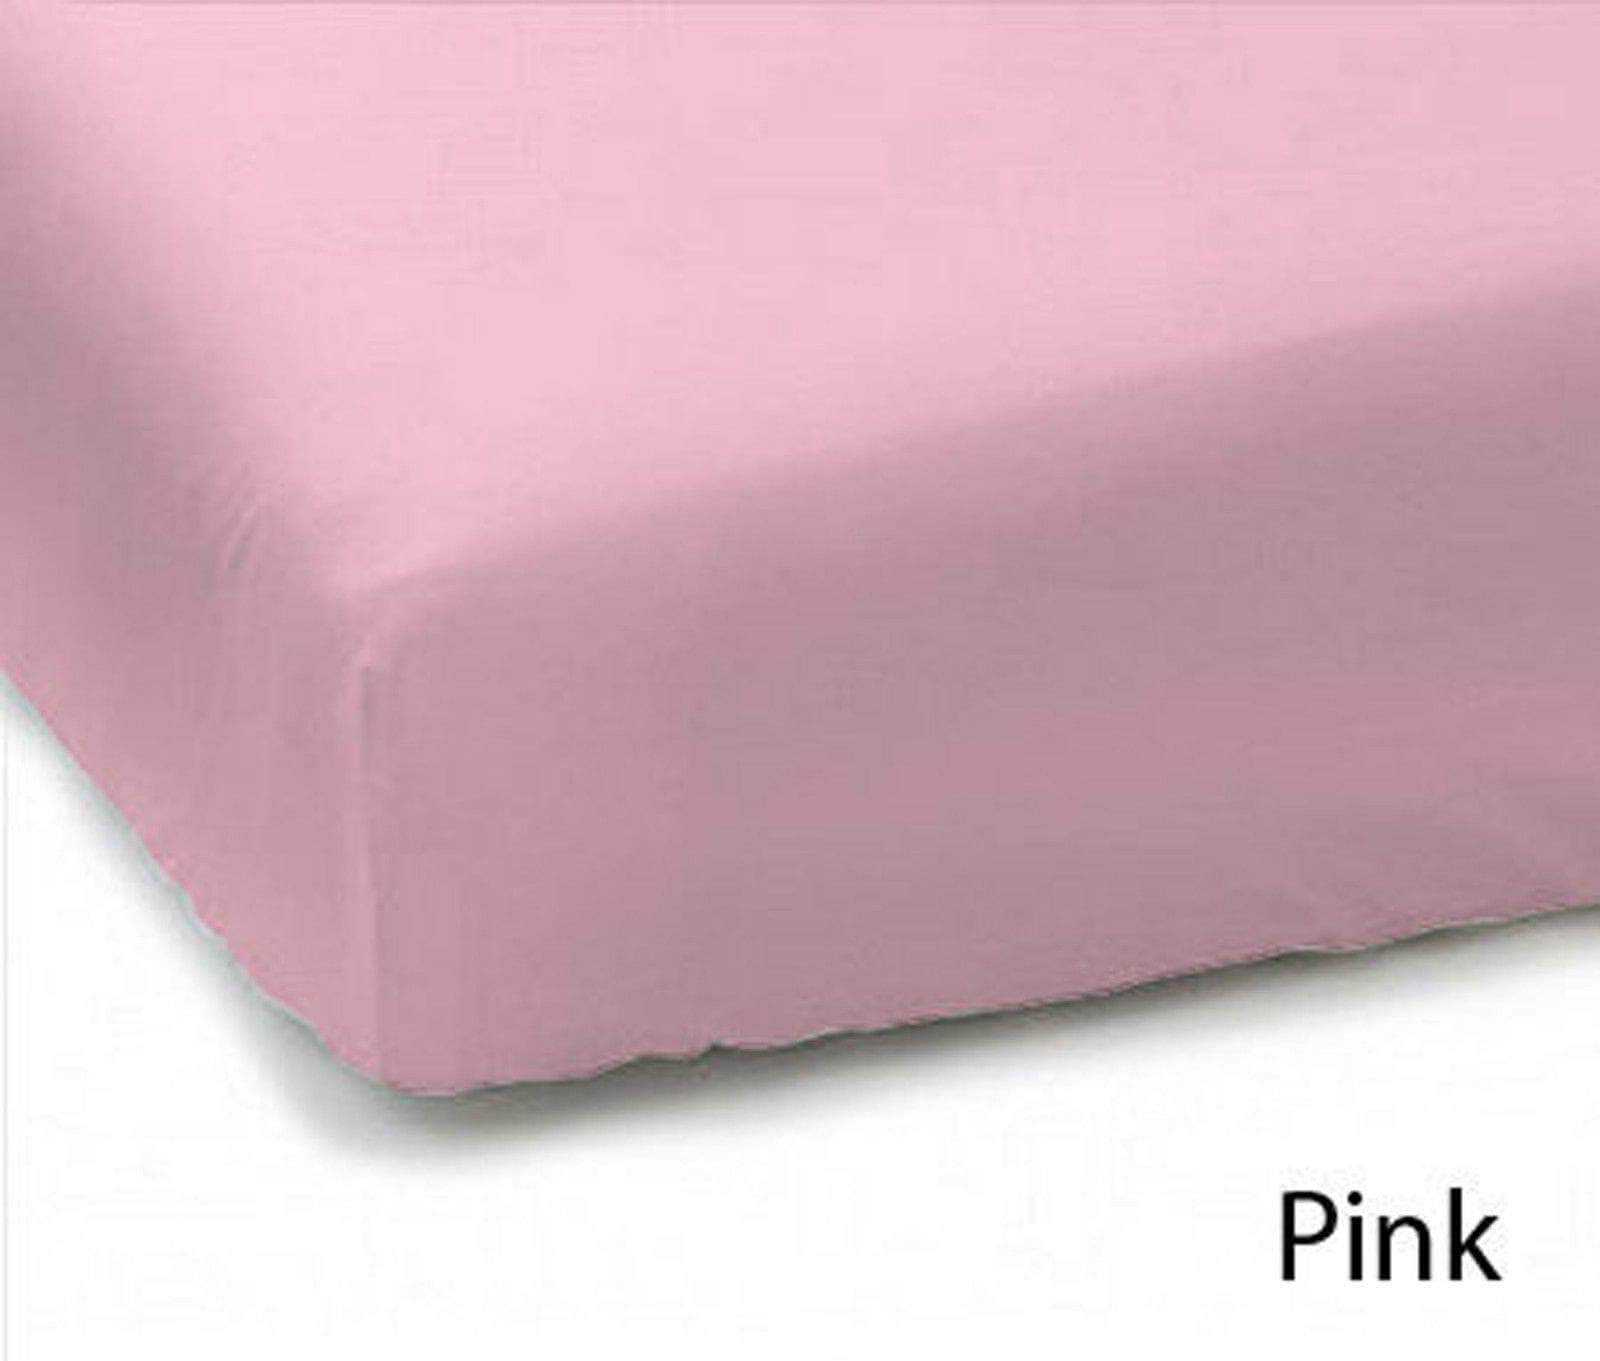 Plain Dyed Polycotton Fitted Sheets Single Double King Super King Pillowcases - Arlinens